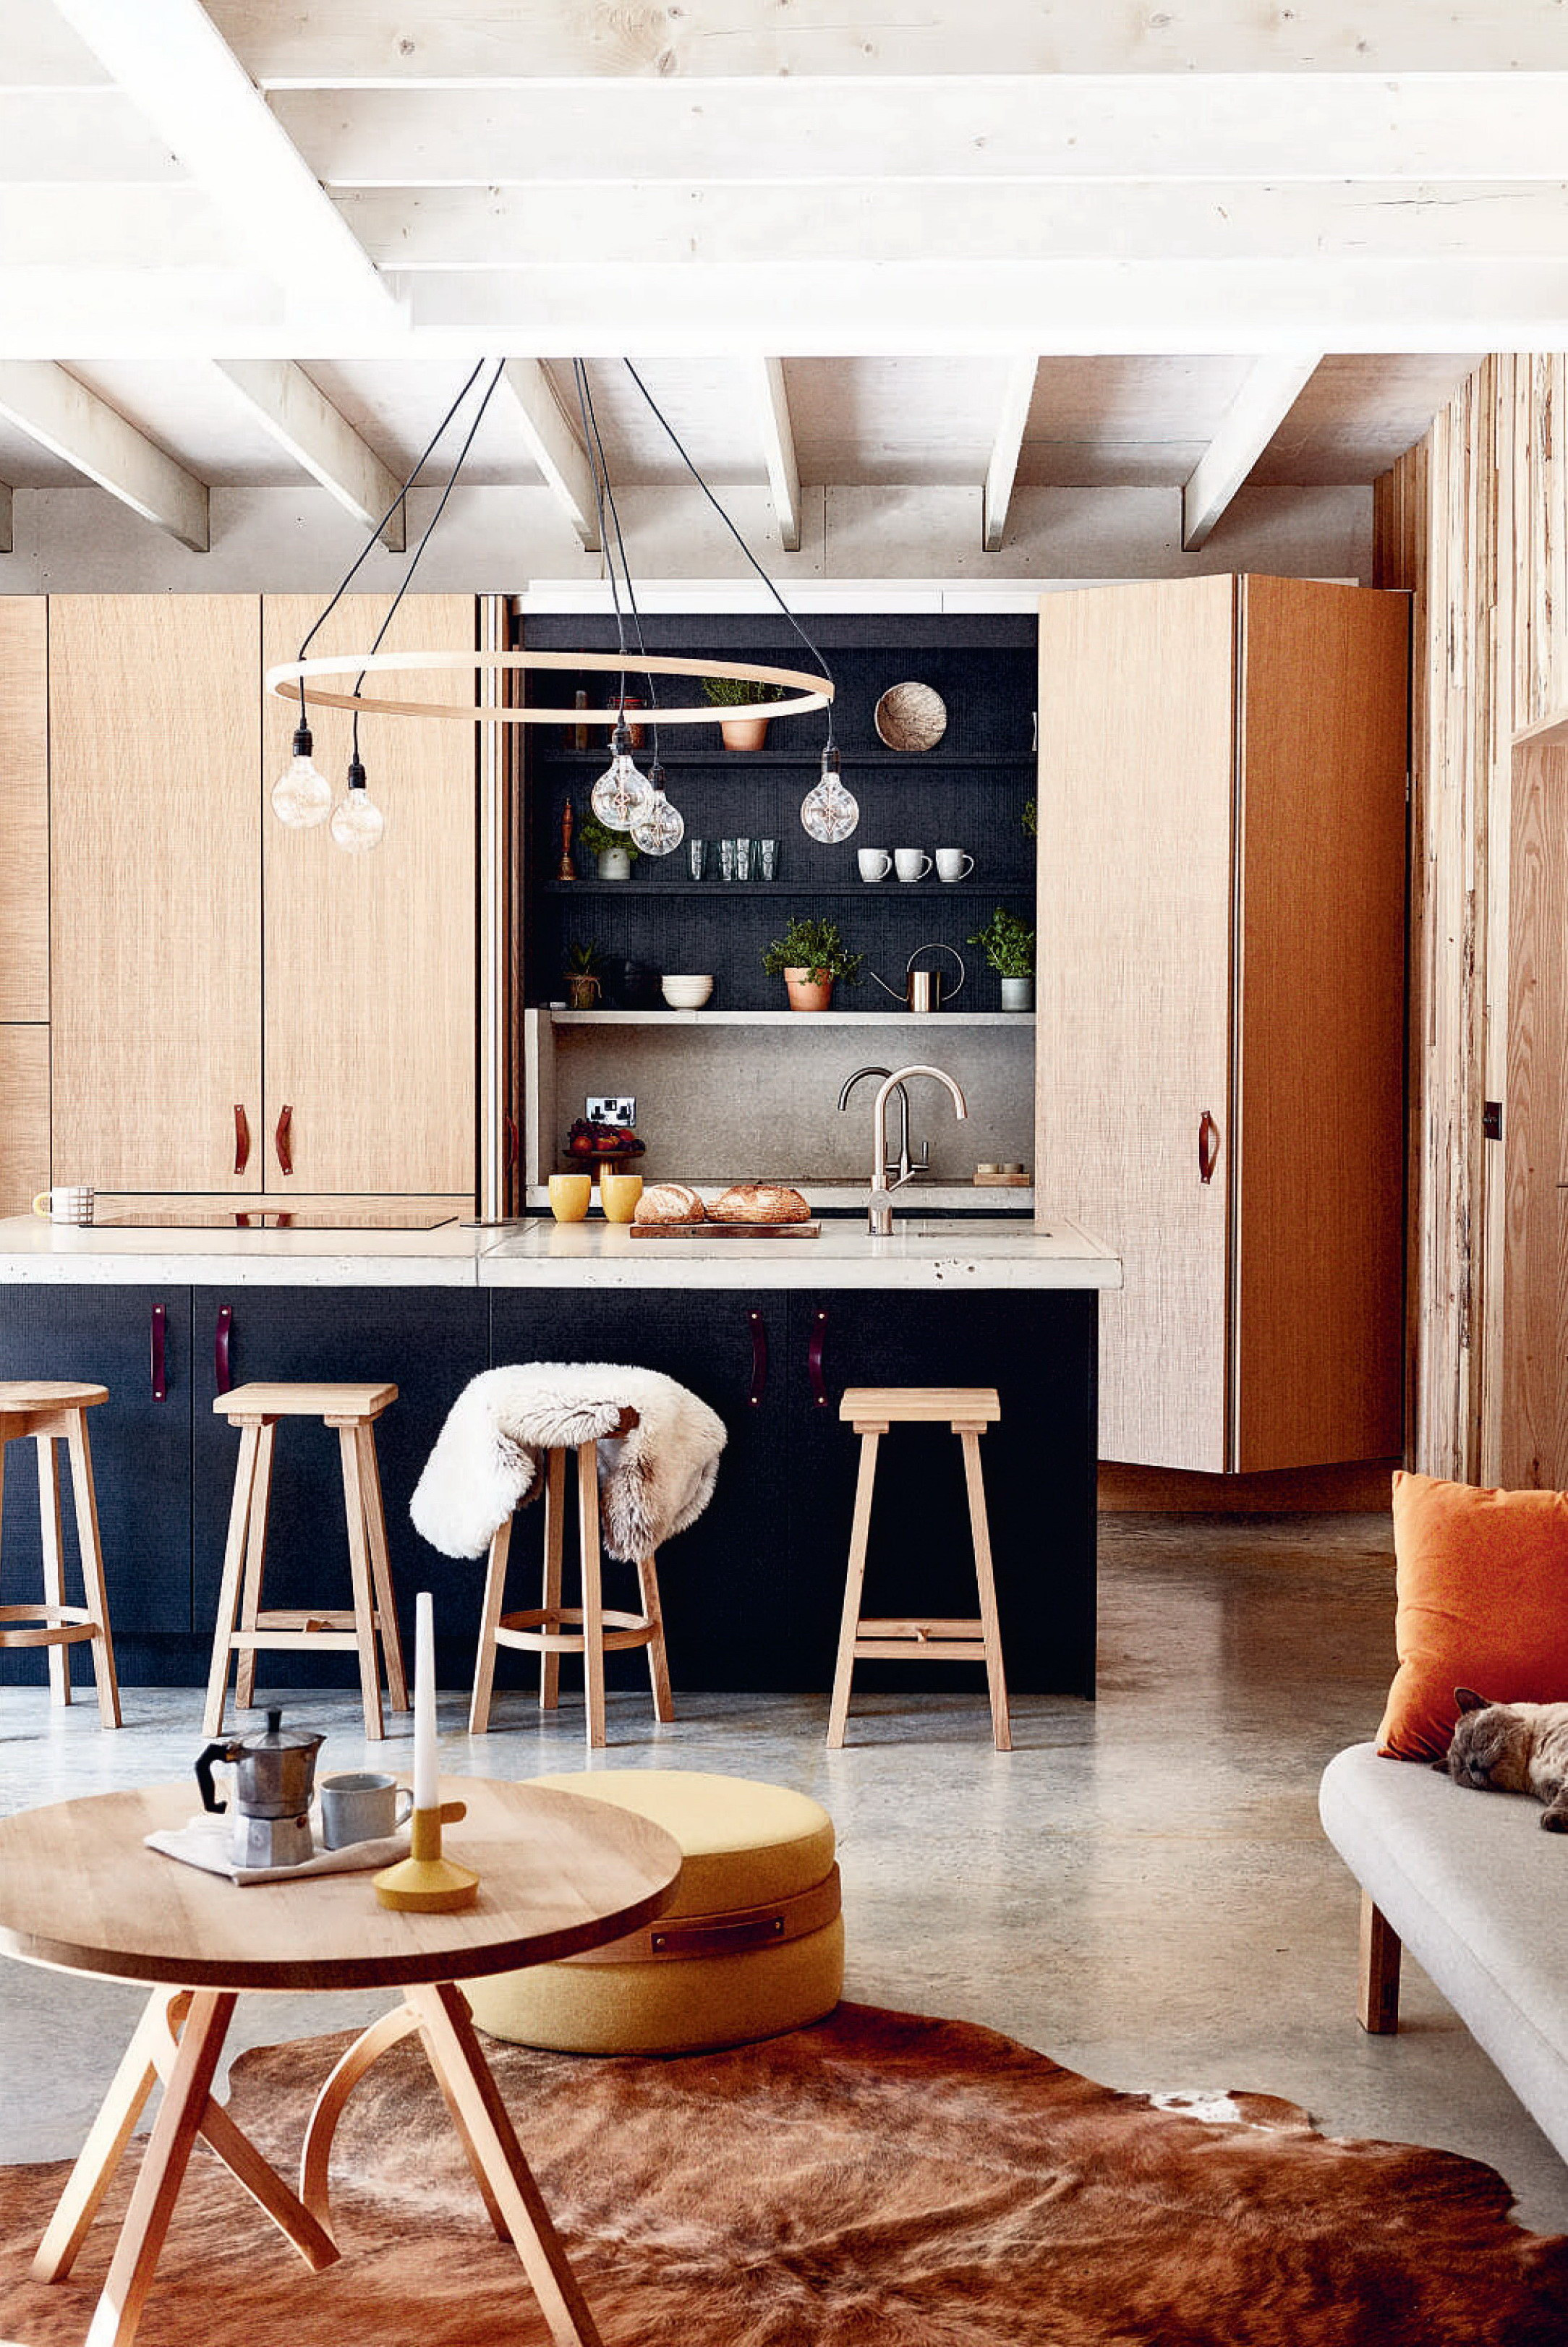 Unique Family Home by Tom and Danielle Raffield